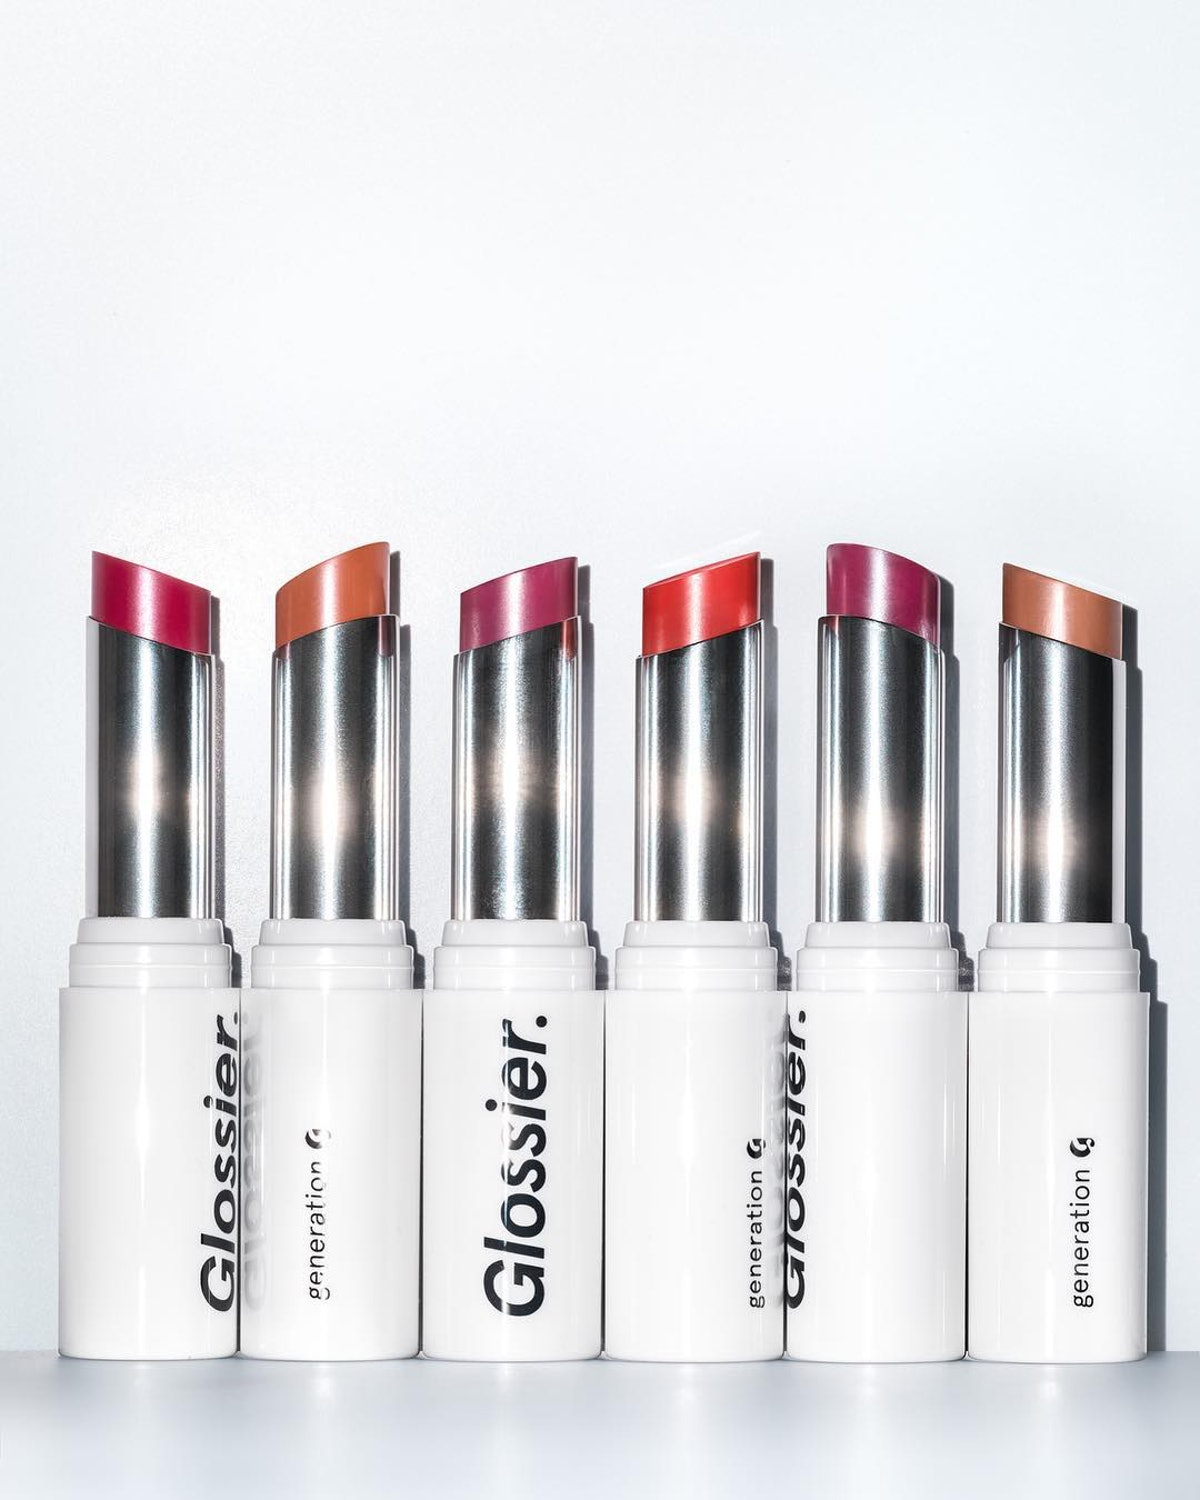 Glossier's 2018 Black Friday & Cyber Monday Sales Include $12 Boy Brow & $11 Lip Gloss